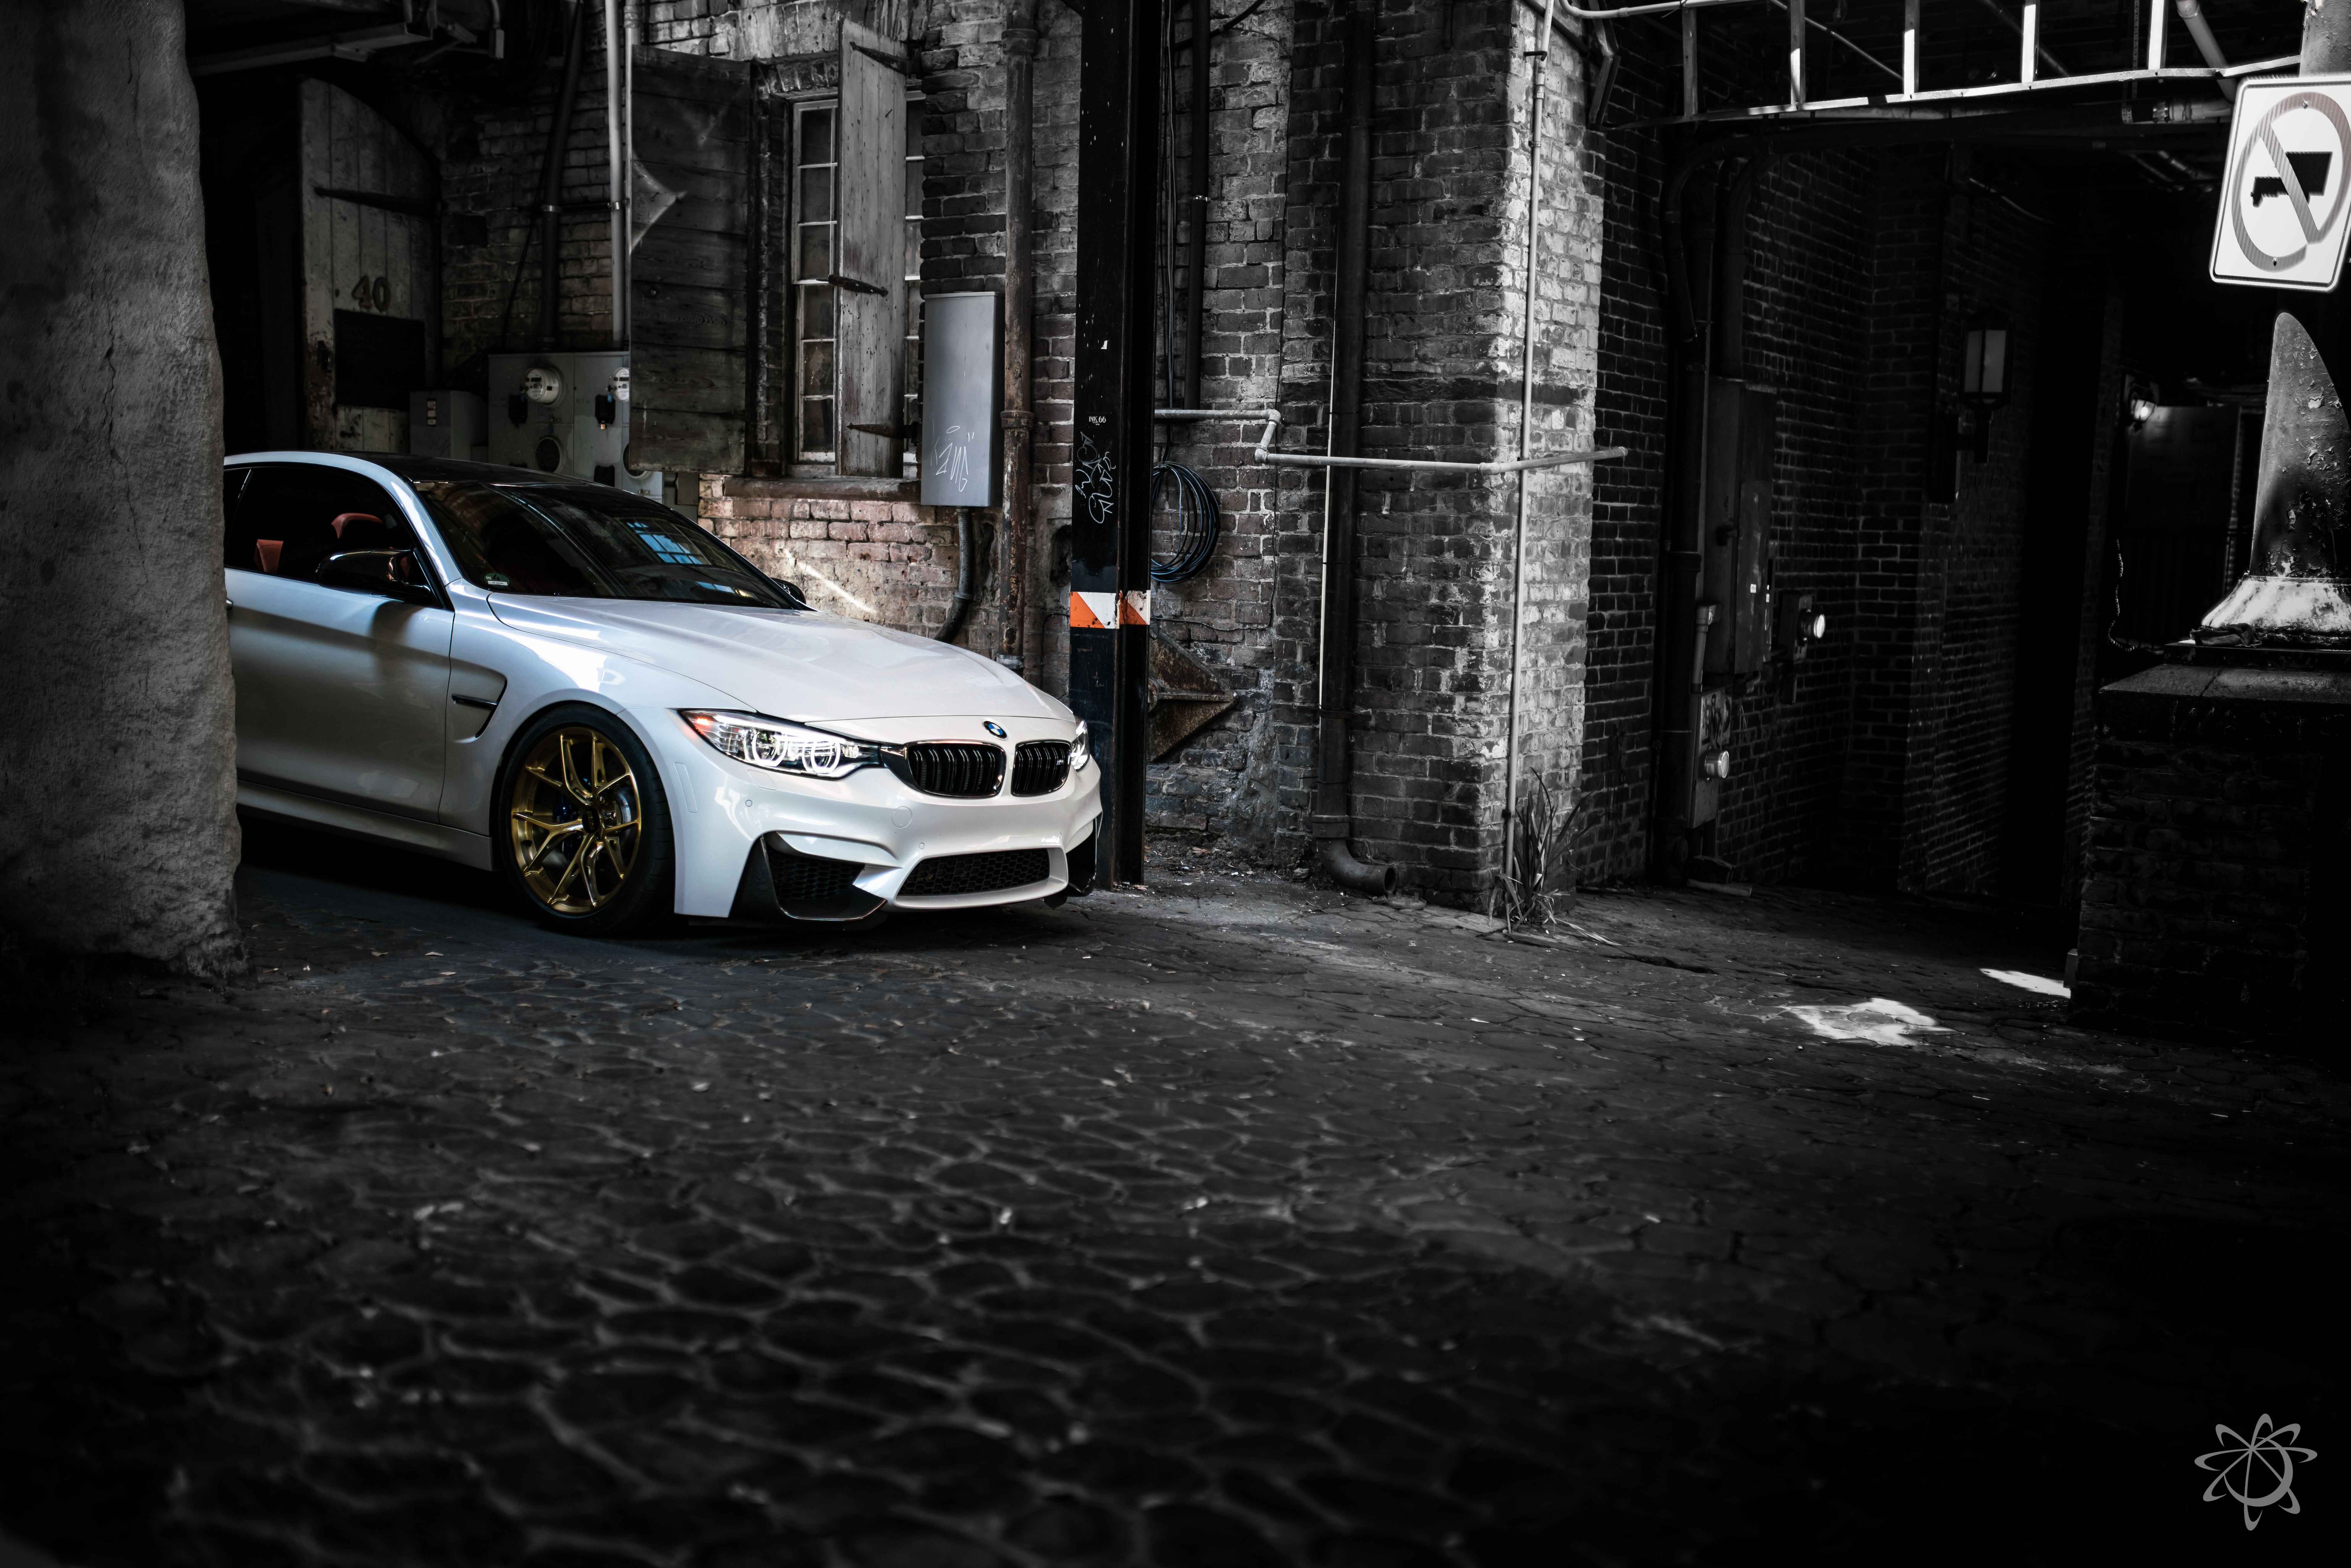 Your Ridiculously Awesome Bmw M4 Wallpaper Is Here Bmw Bmw M4 Bmw M4 Wallpapers